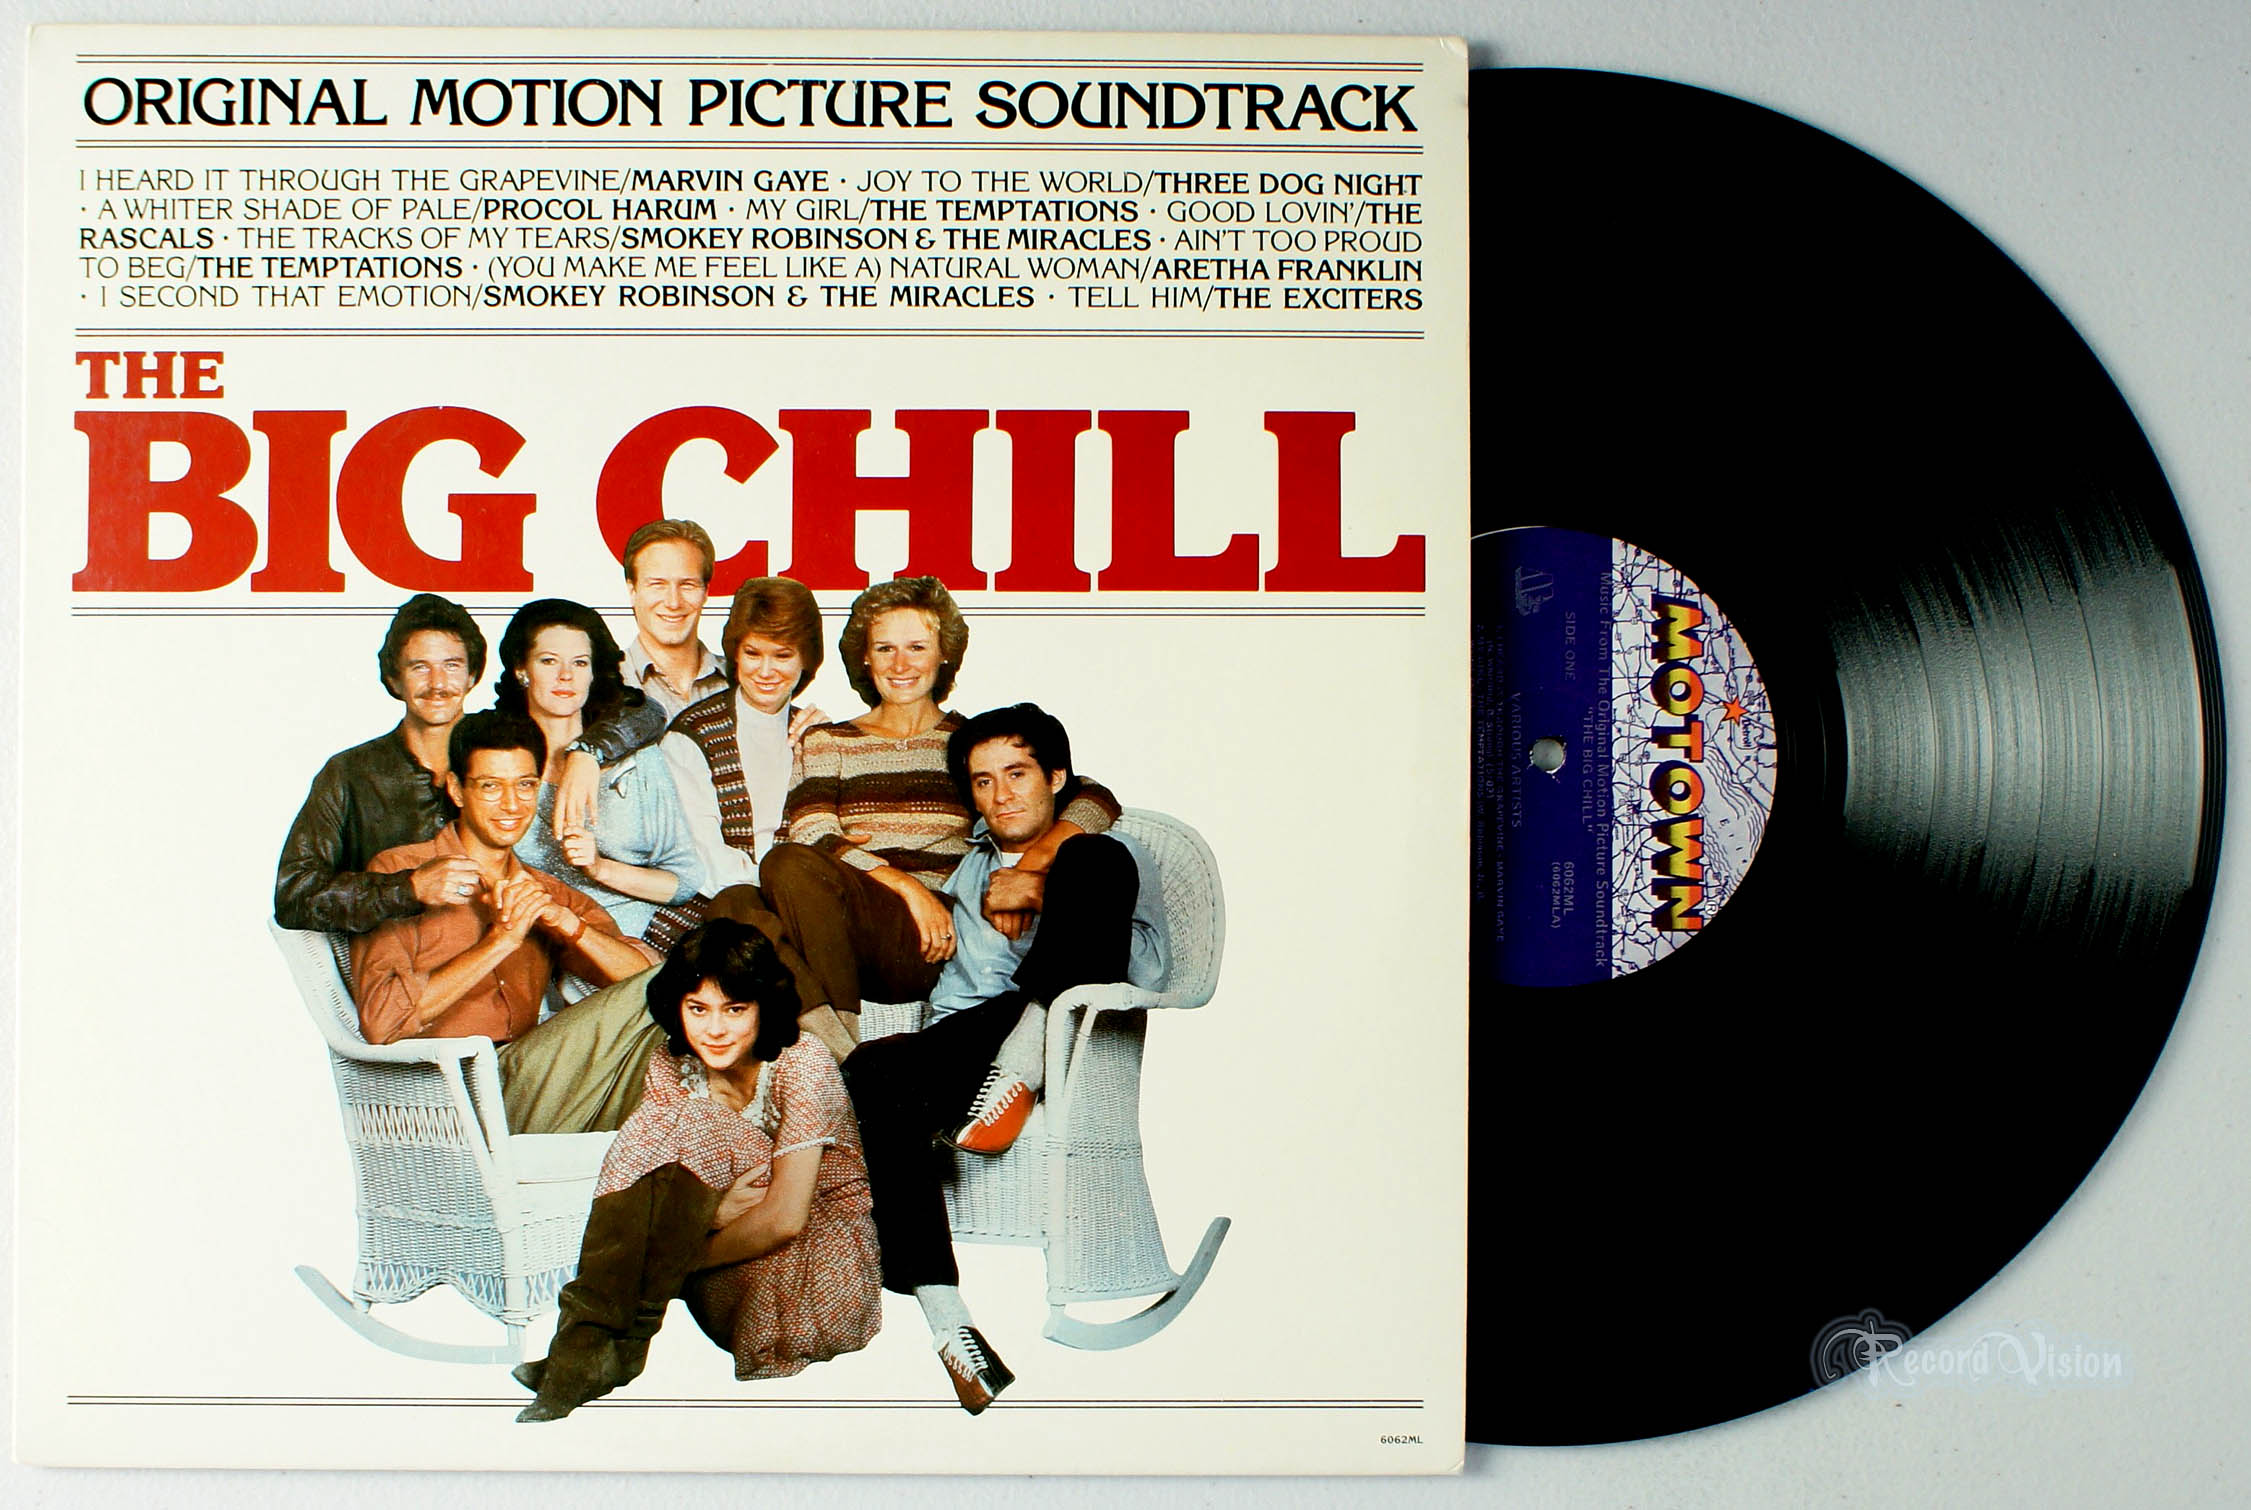 ASSORTED (ARETHA FRANKLIN) - The Big Chill - 33T